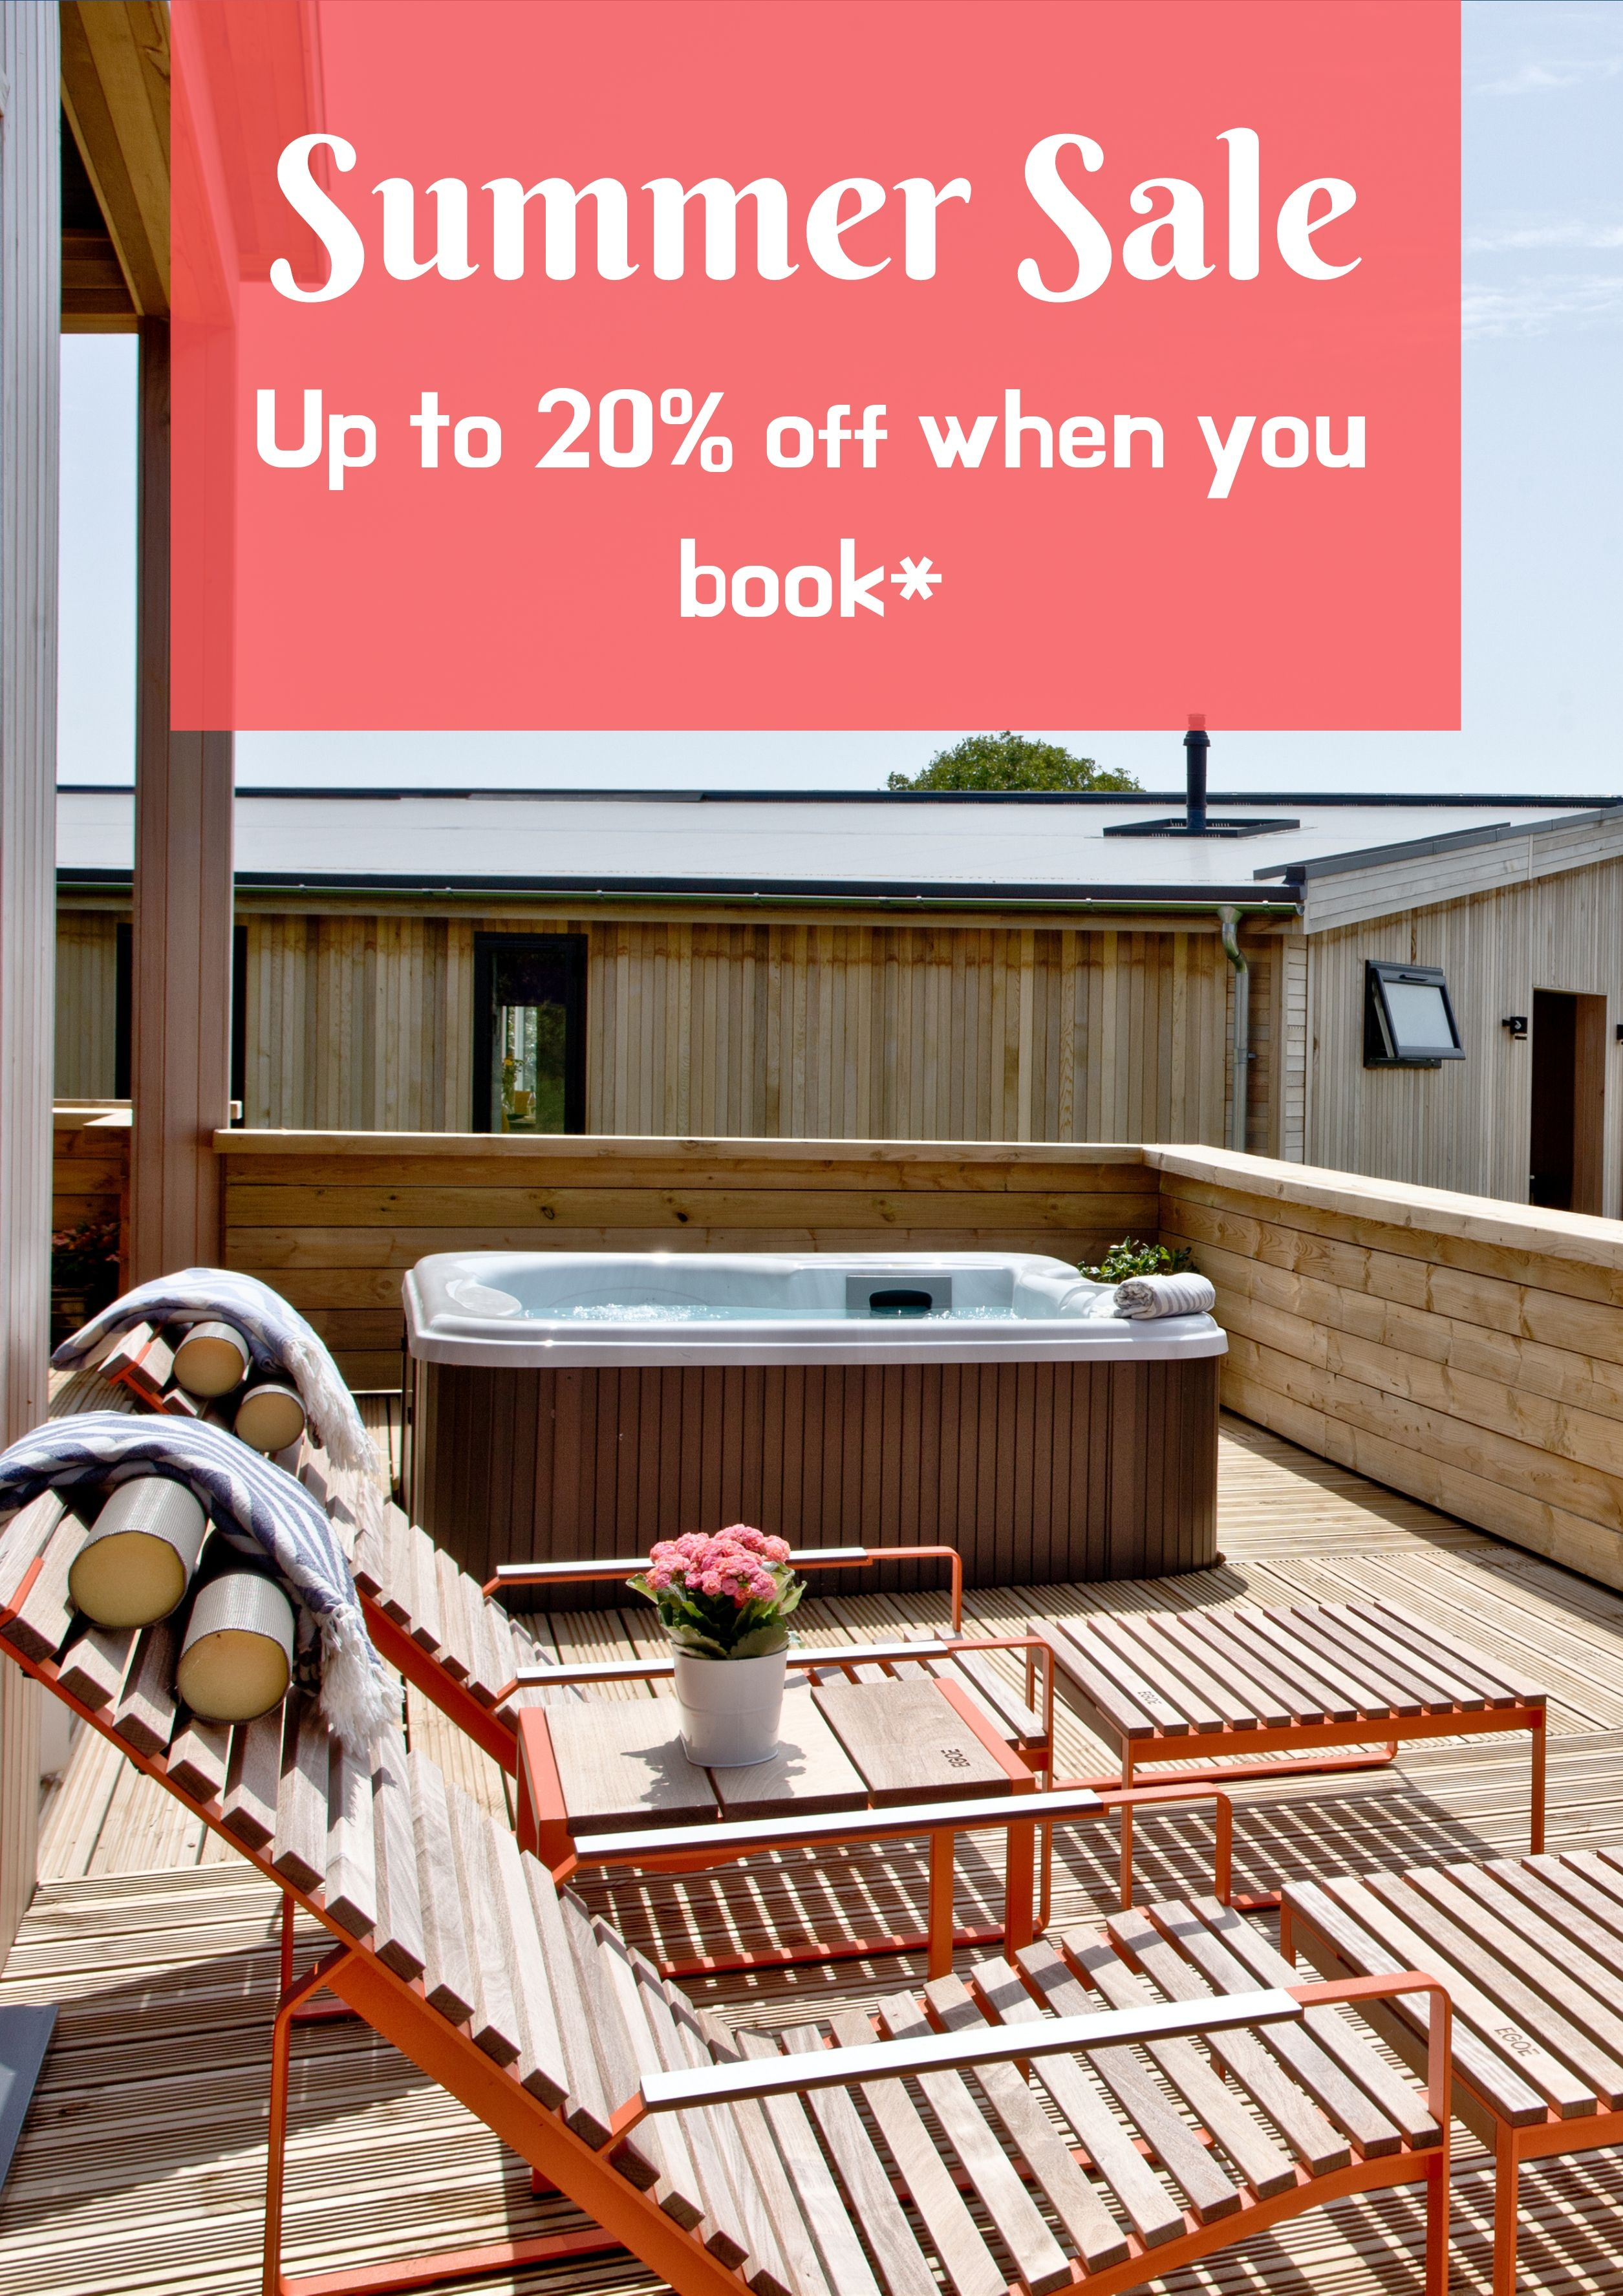 Book your Summer stay and get up to 20% off